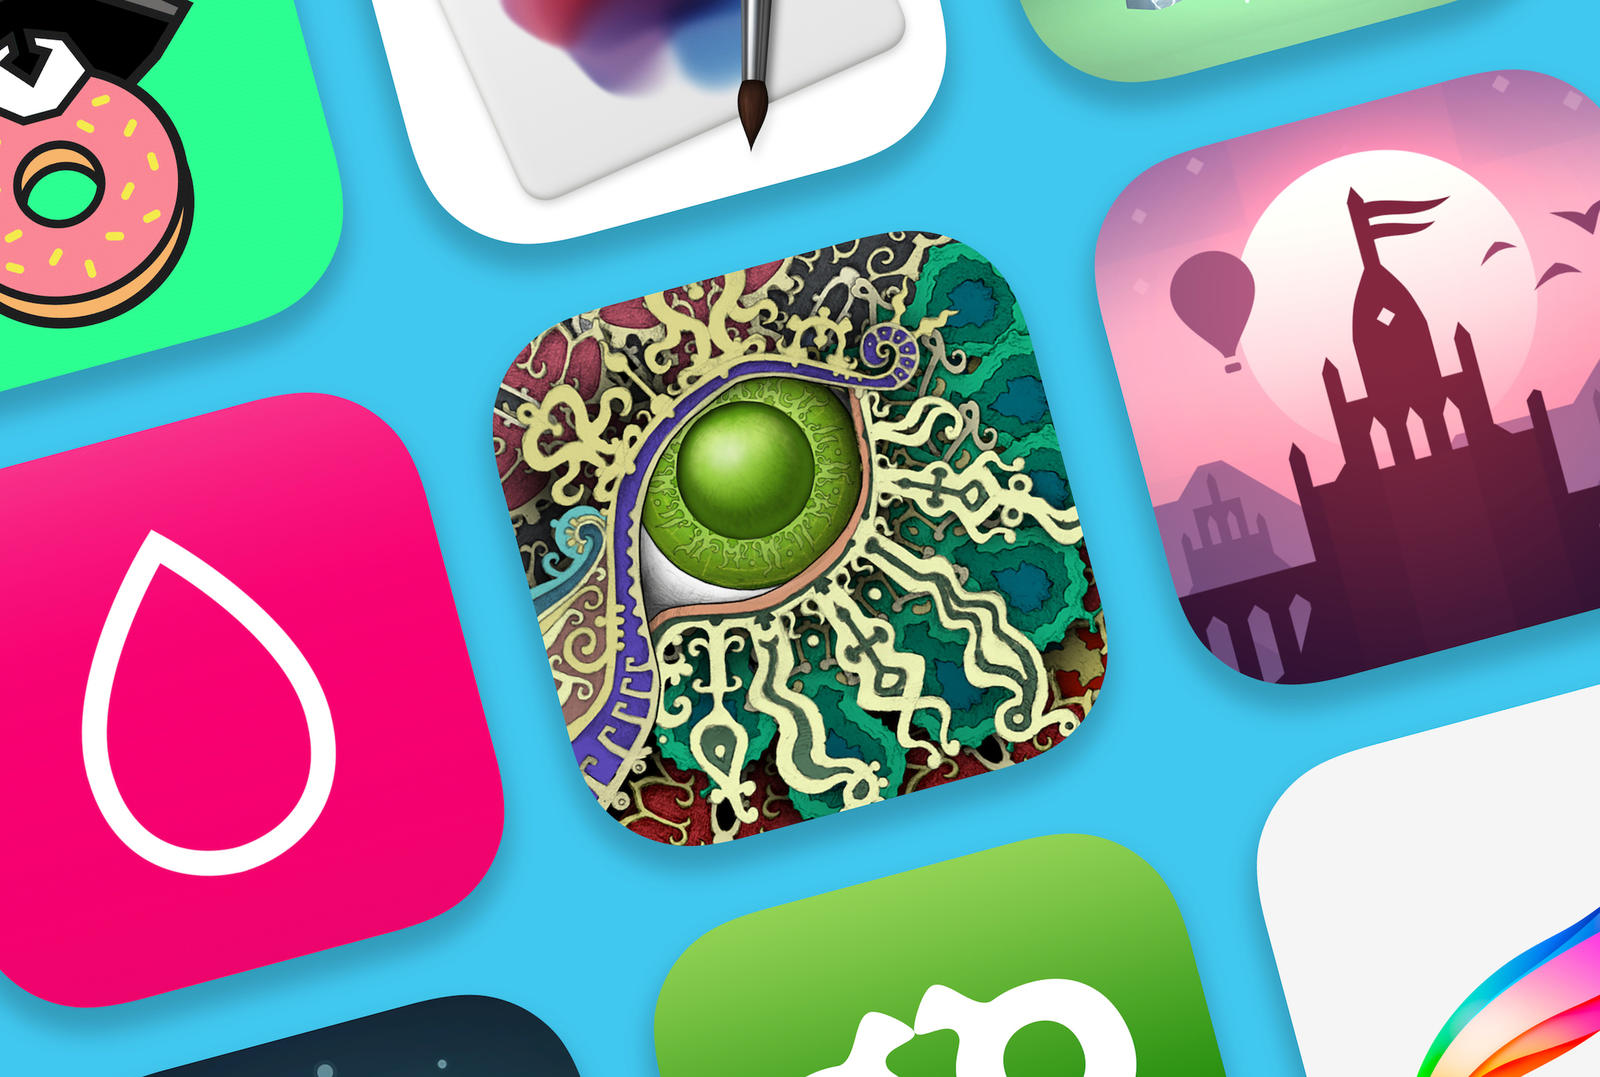 Outstanding The 40 Best Free And Paid Iphone Games Of 2018 Technobuffalo Home Interior And Landscaping Ologienasavecom